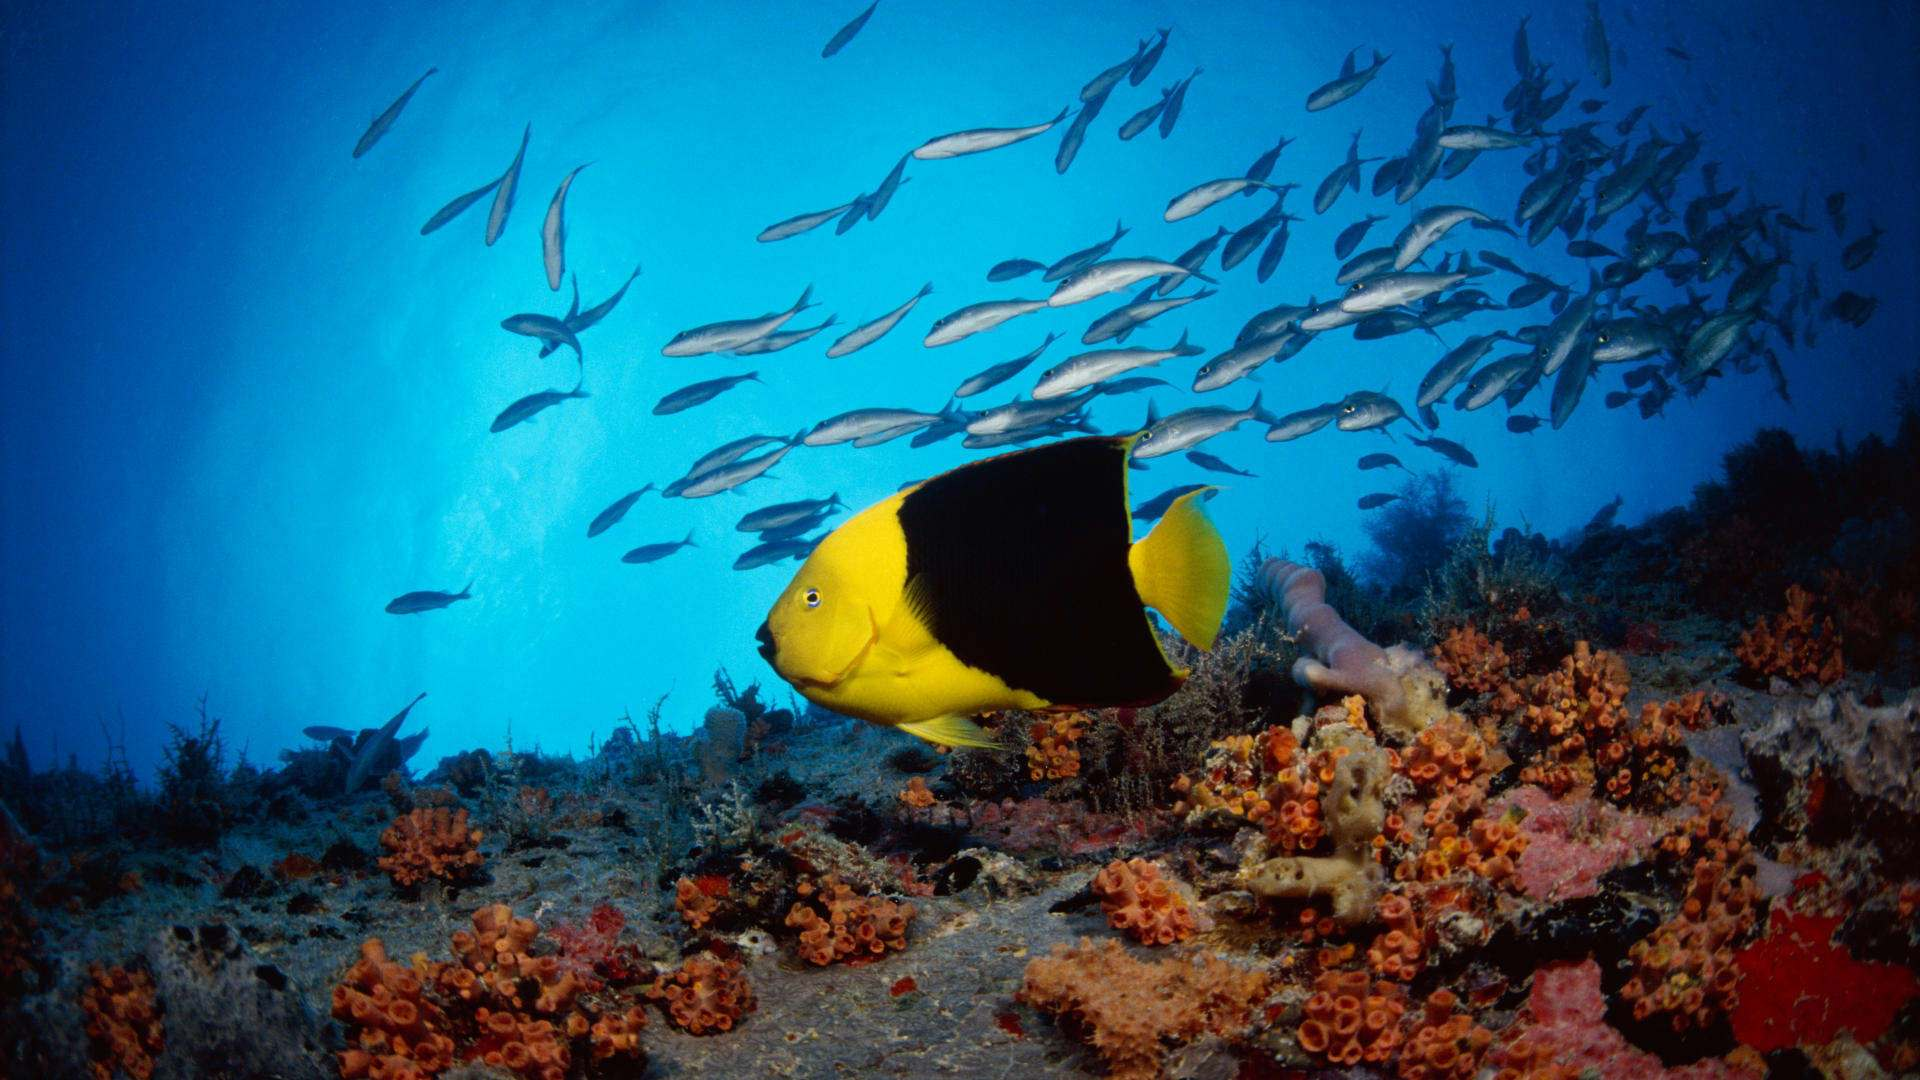 Fish hd wallpapers - Large screen wallpapers free ...